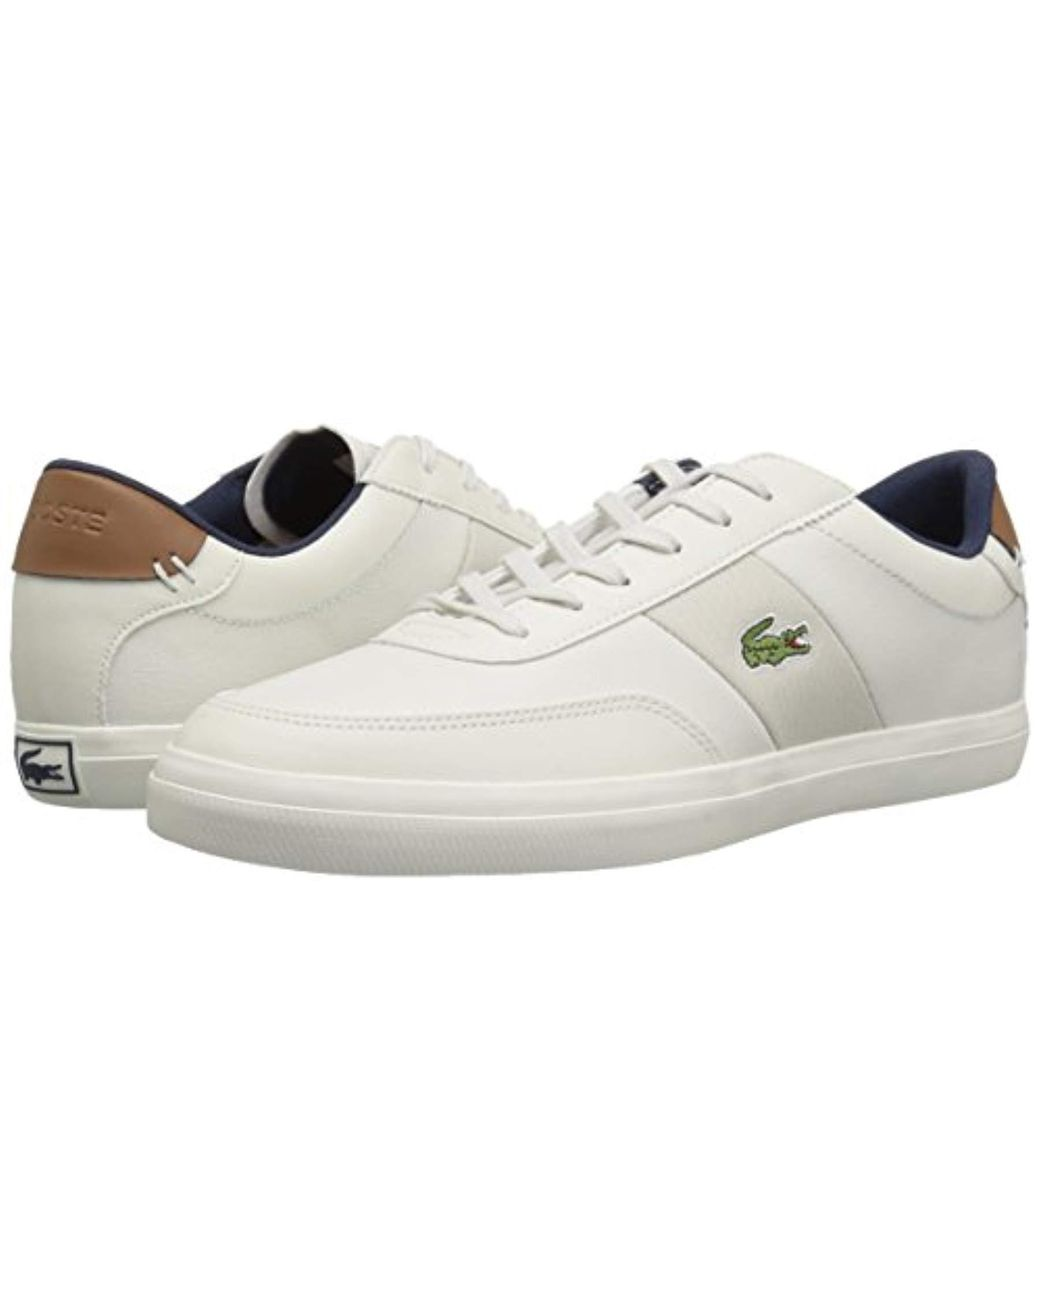 b9591a62c Lacoste Court-master Sneaker in White for Men - Save 27% - Lyst